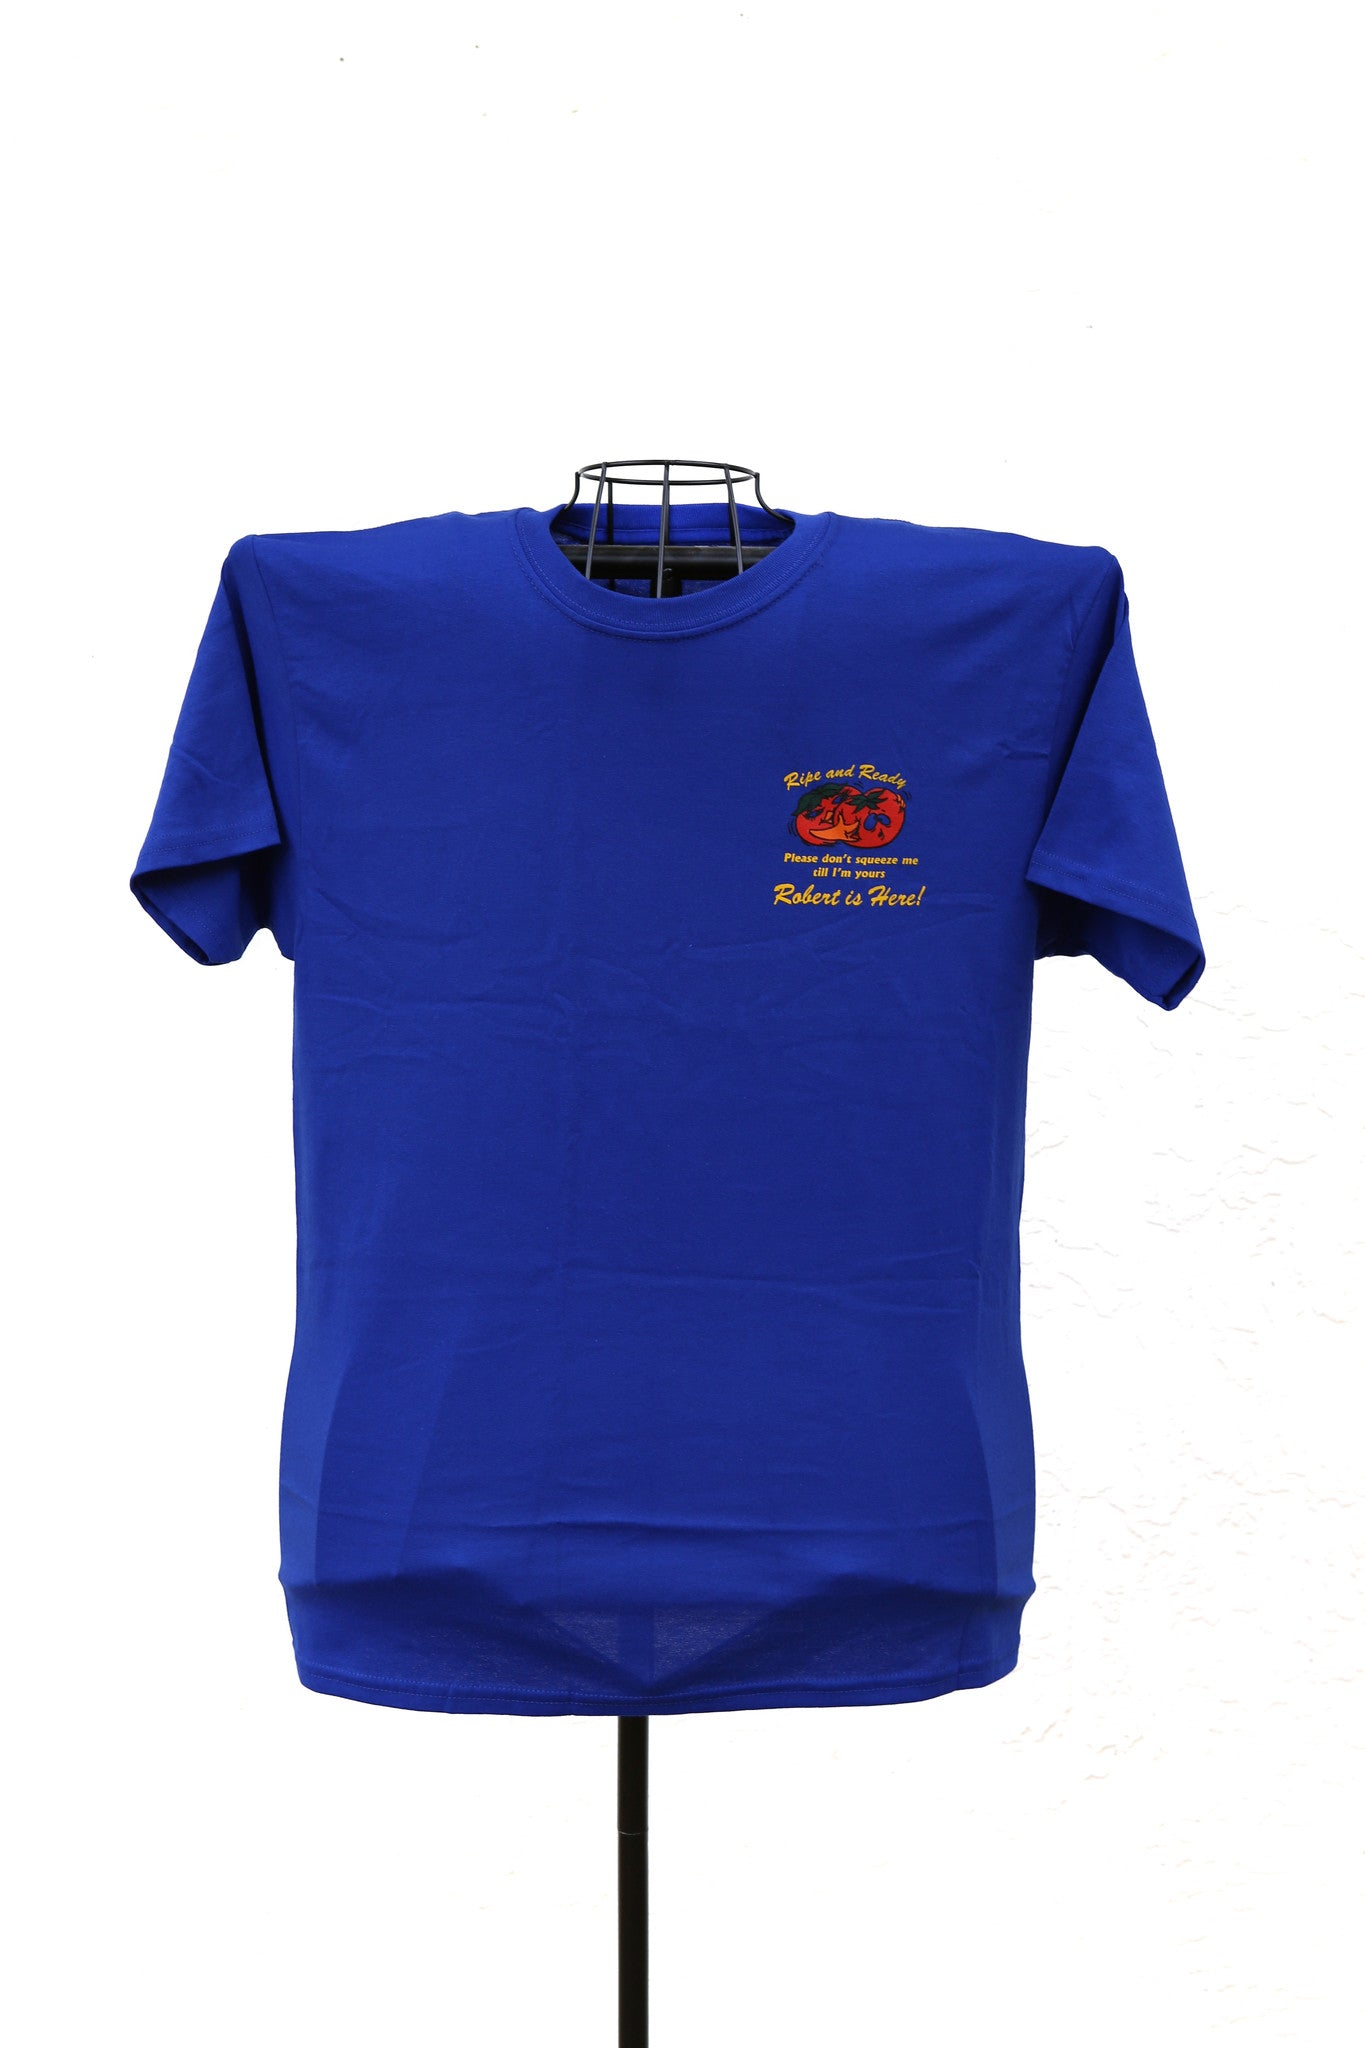 Robert Is Here T-shirt - Blue